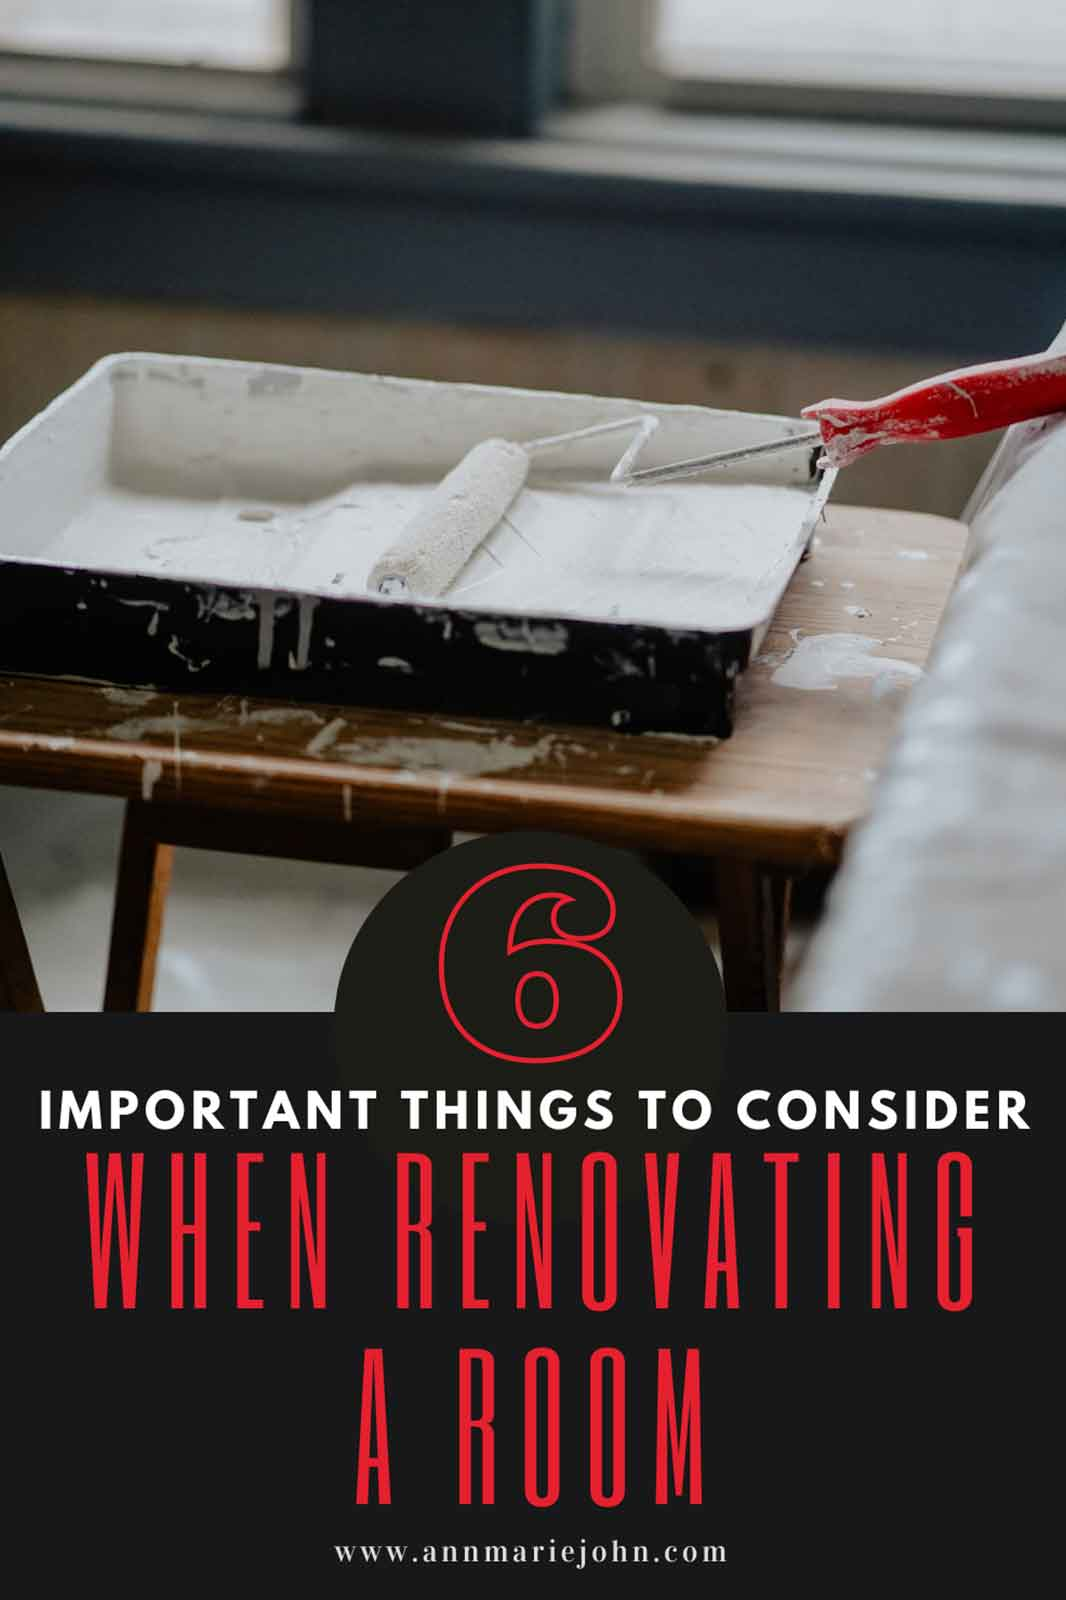 Important Things to Consider When Renovating any Room